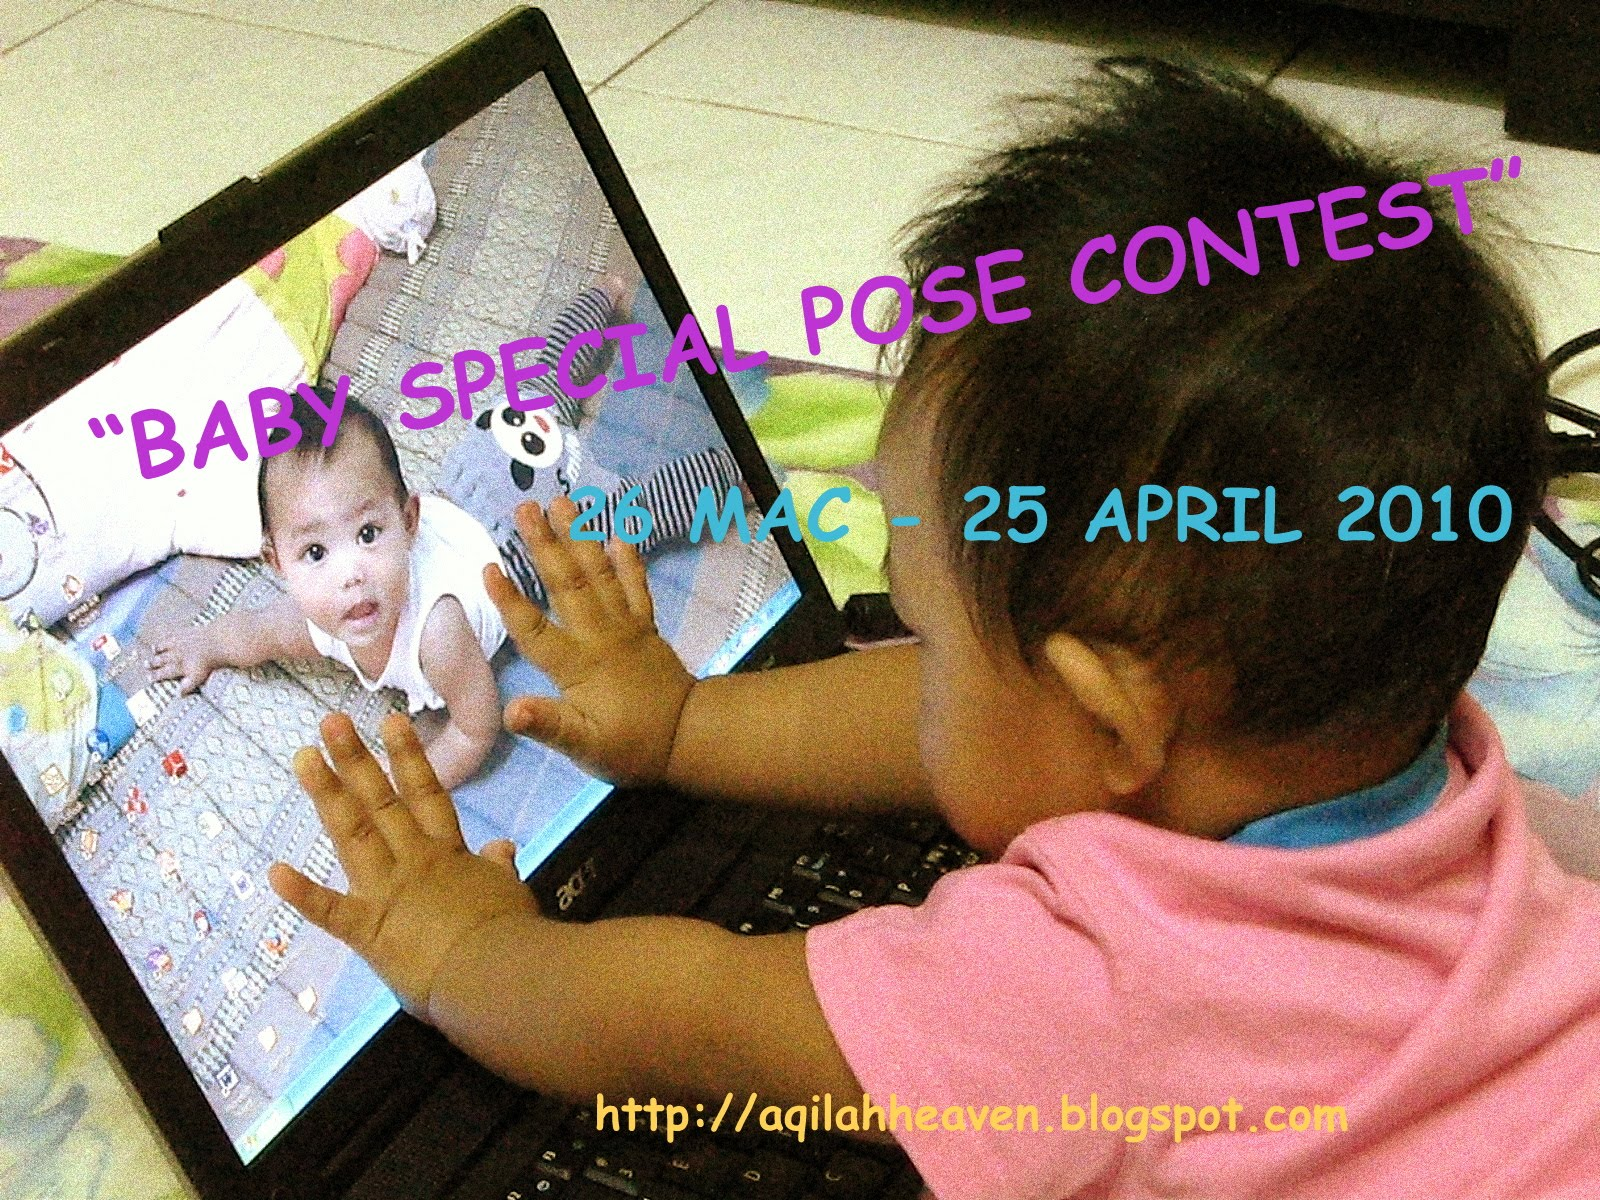 Baby Special Pose Contest